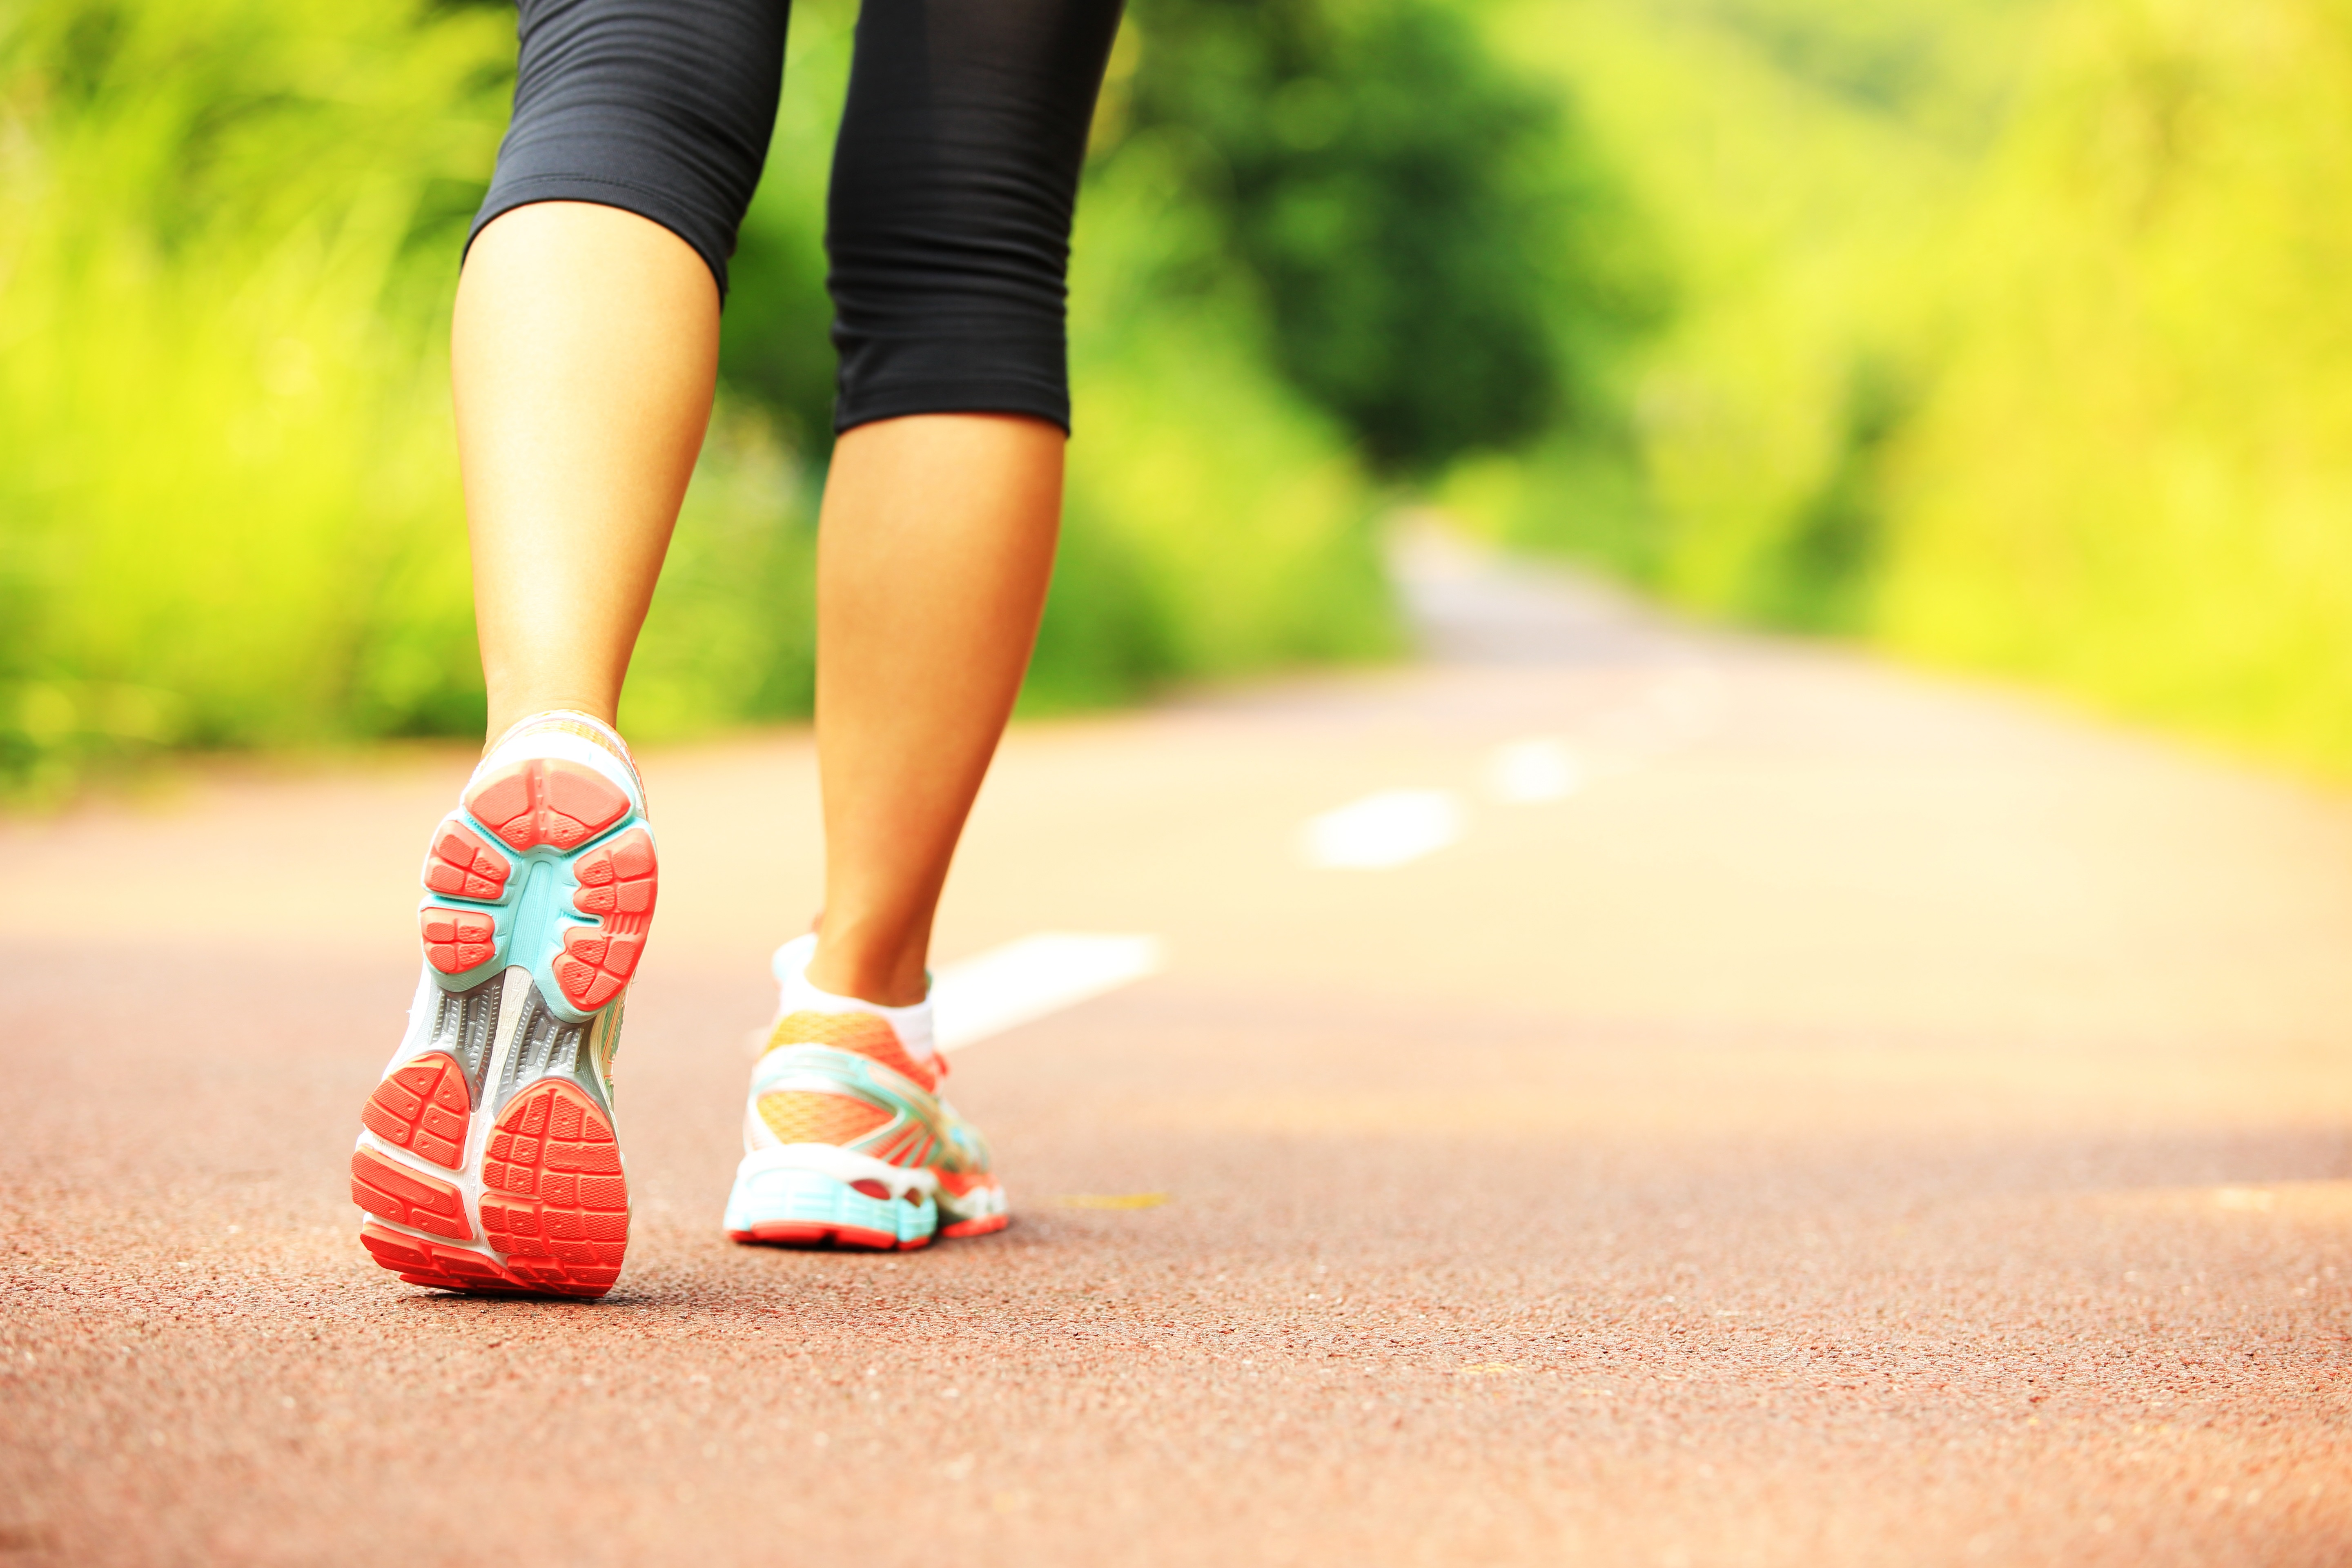 Researchers Assess Best Exercise Protocol for Pulmonary Hypertension Patients